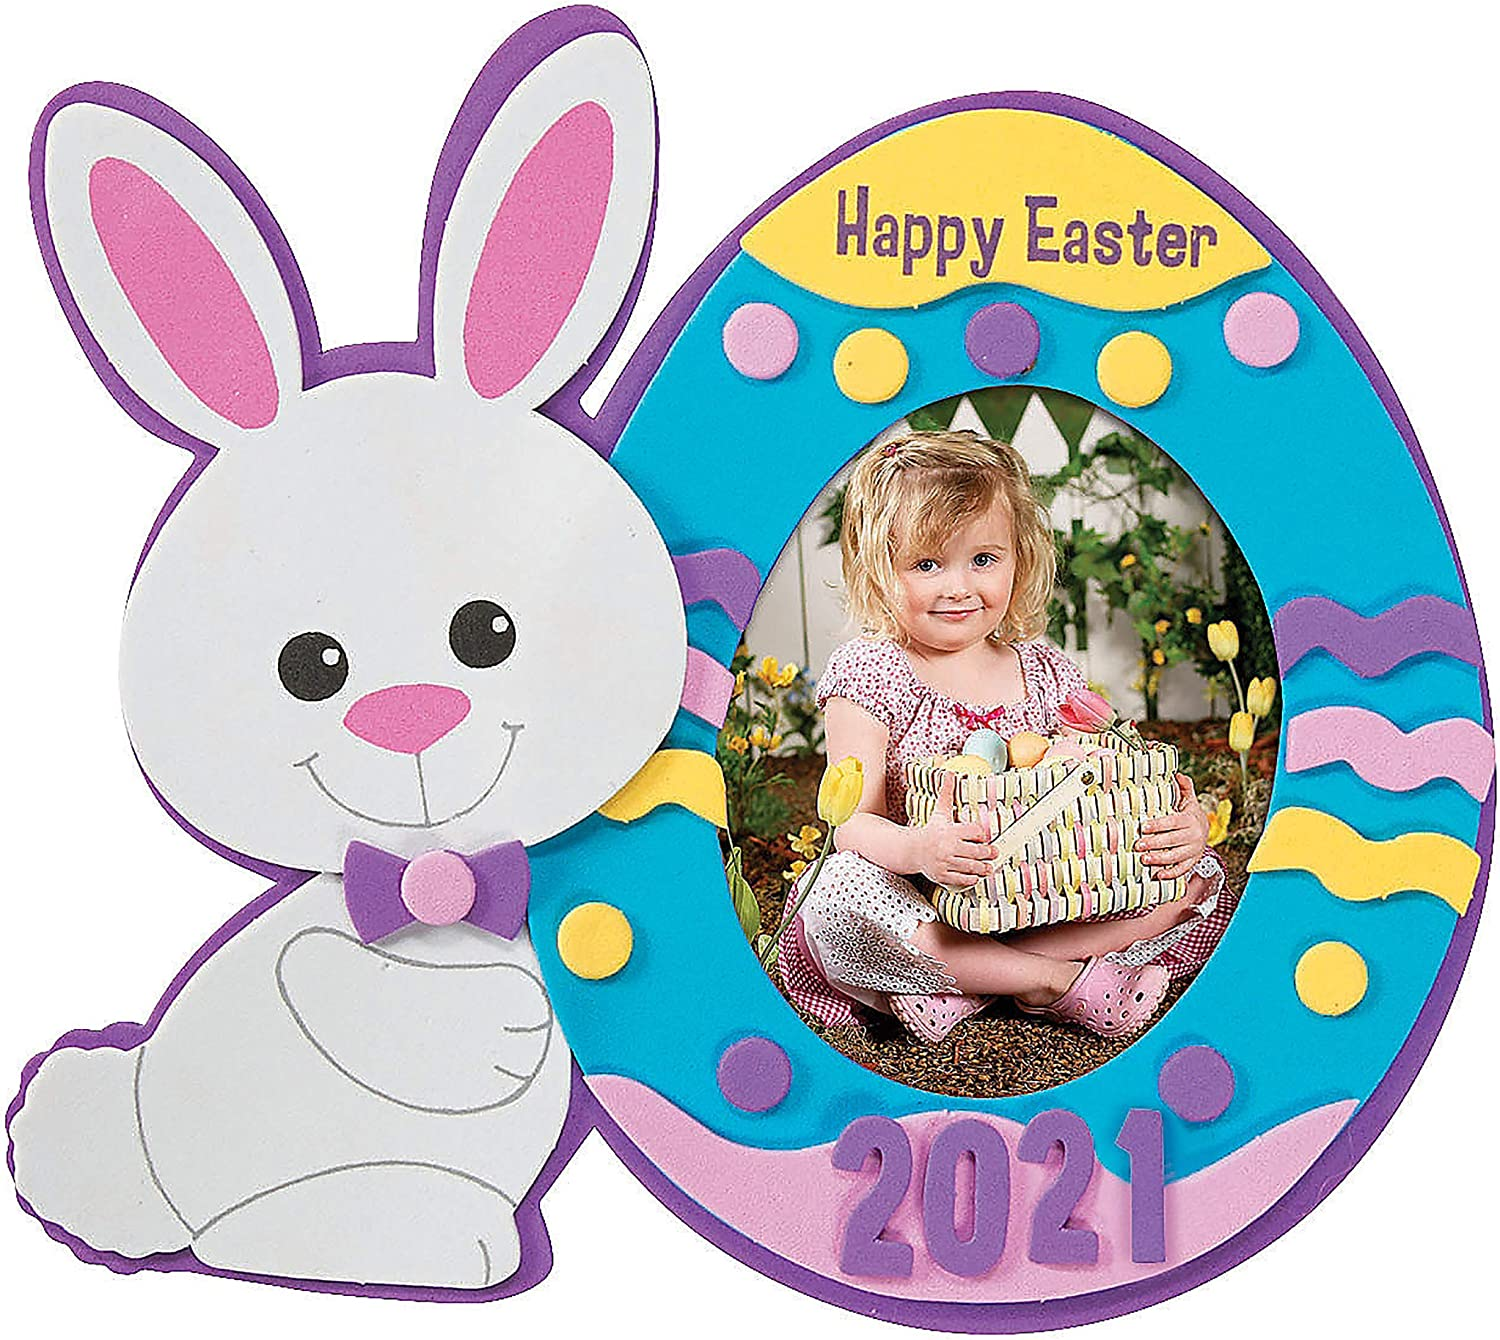 Makes 12 2021 Dated Picture Frame Magnet Craft Kit 4Es Novelty Easter Craft for Kids Mess Free Self Adhesive Foam Craft